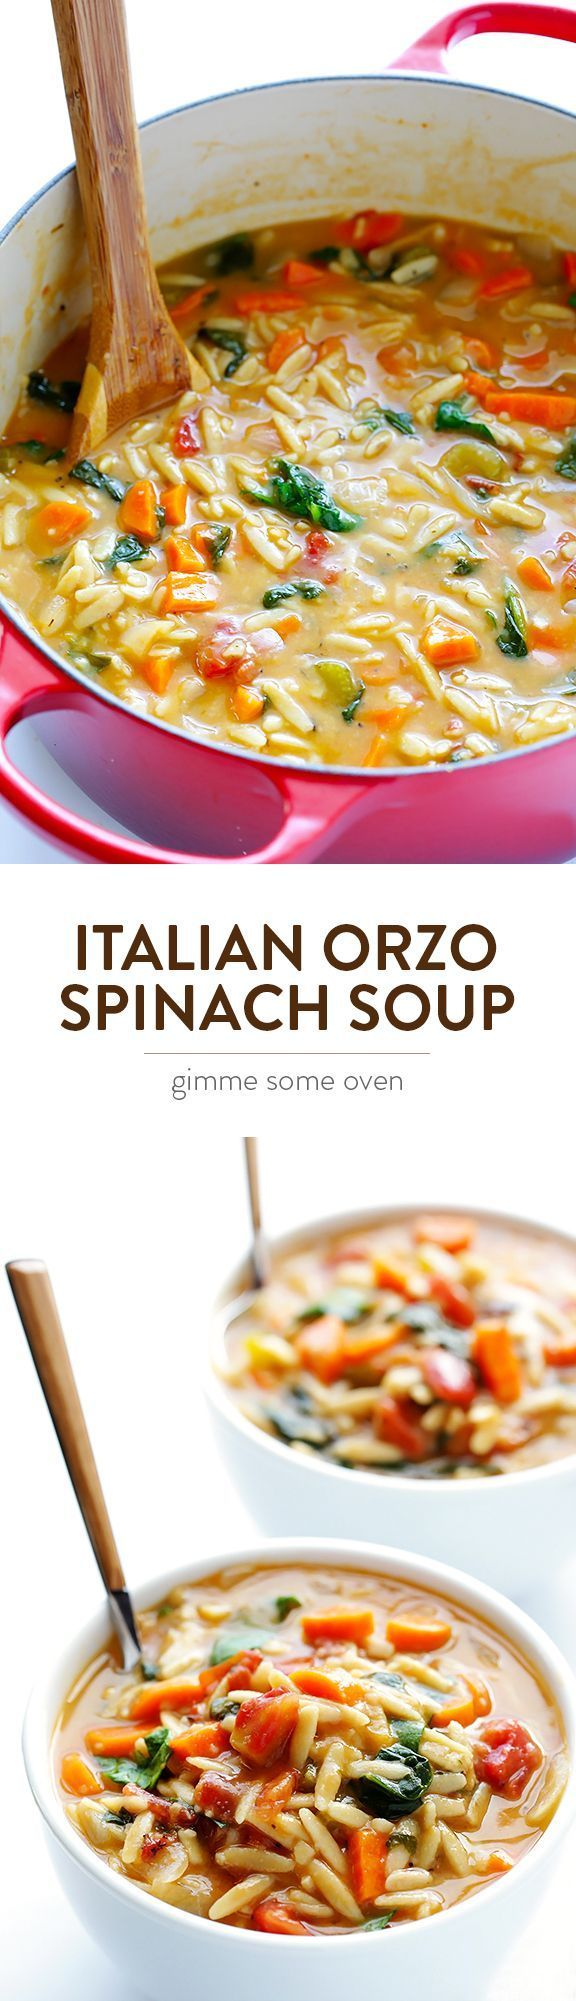 This Italian Orzo Spinach Soup is easy to make in 30 minutes, and it is wonderfully delicious and comforting. | http://gimmesomeoven.com